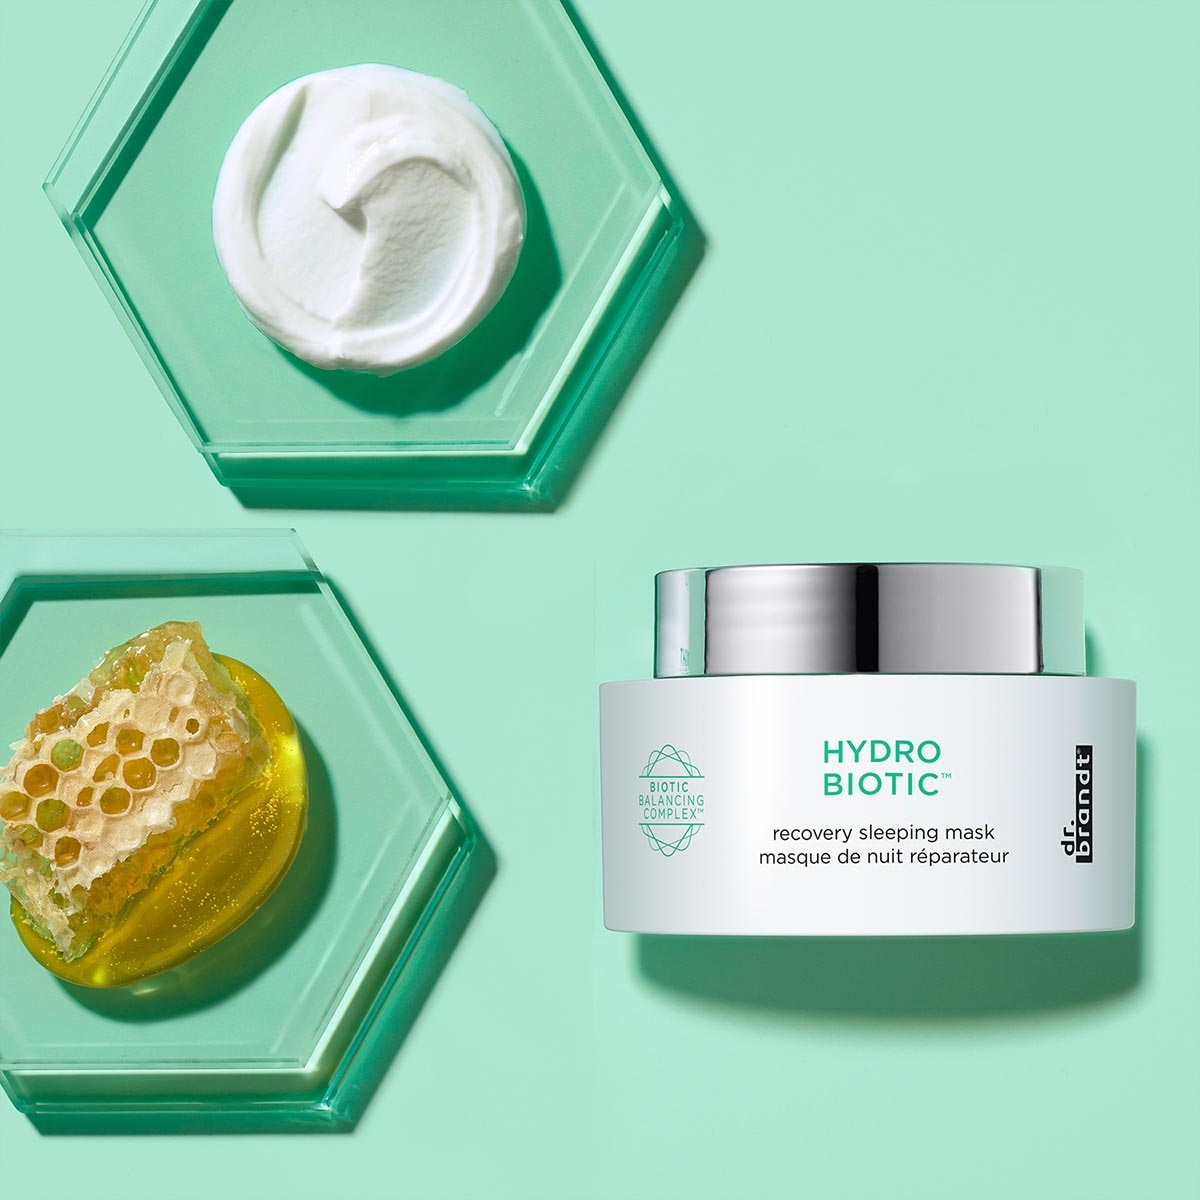 HYDRO BIOTIC™ RECOVERY SLEEPING MASK